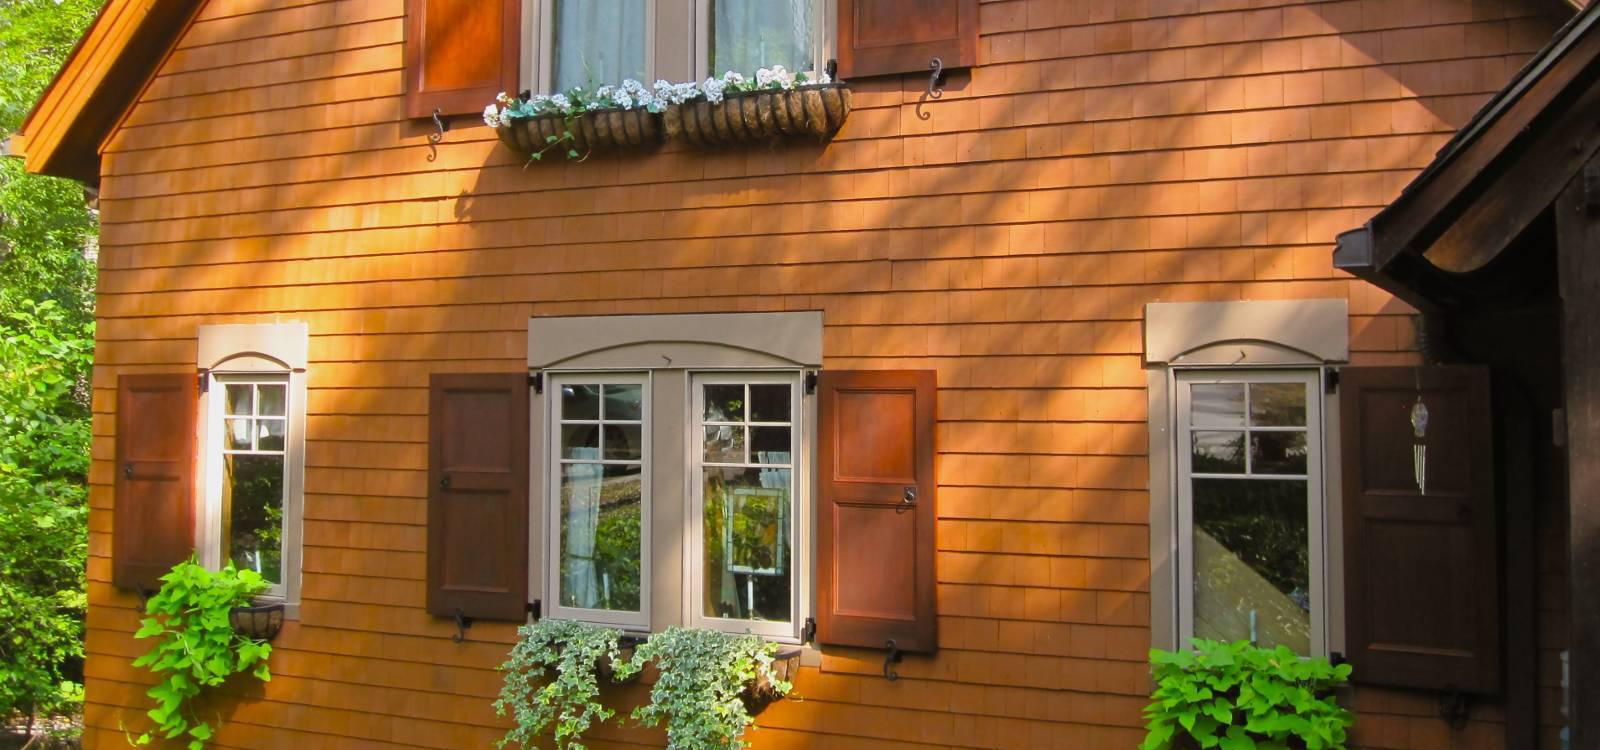 Exterior wood shutters